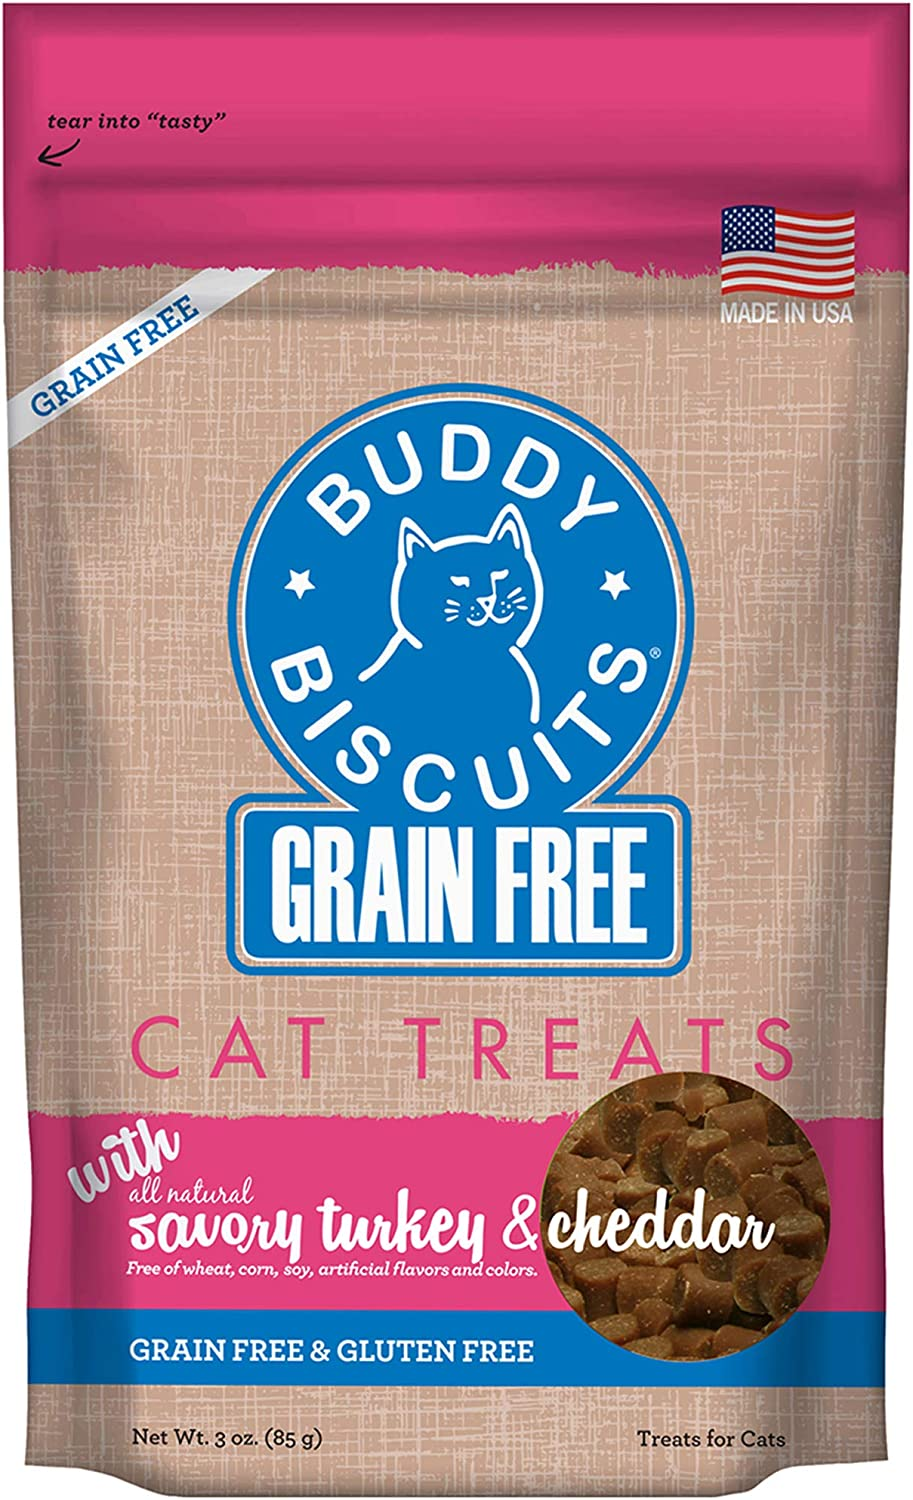 Buddy Biscuits Grain Free Cat Treats, Soft & Chewy, No Added Gluten, Wheat, Corn or Soy